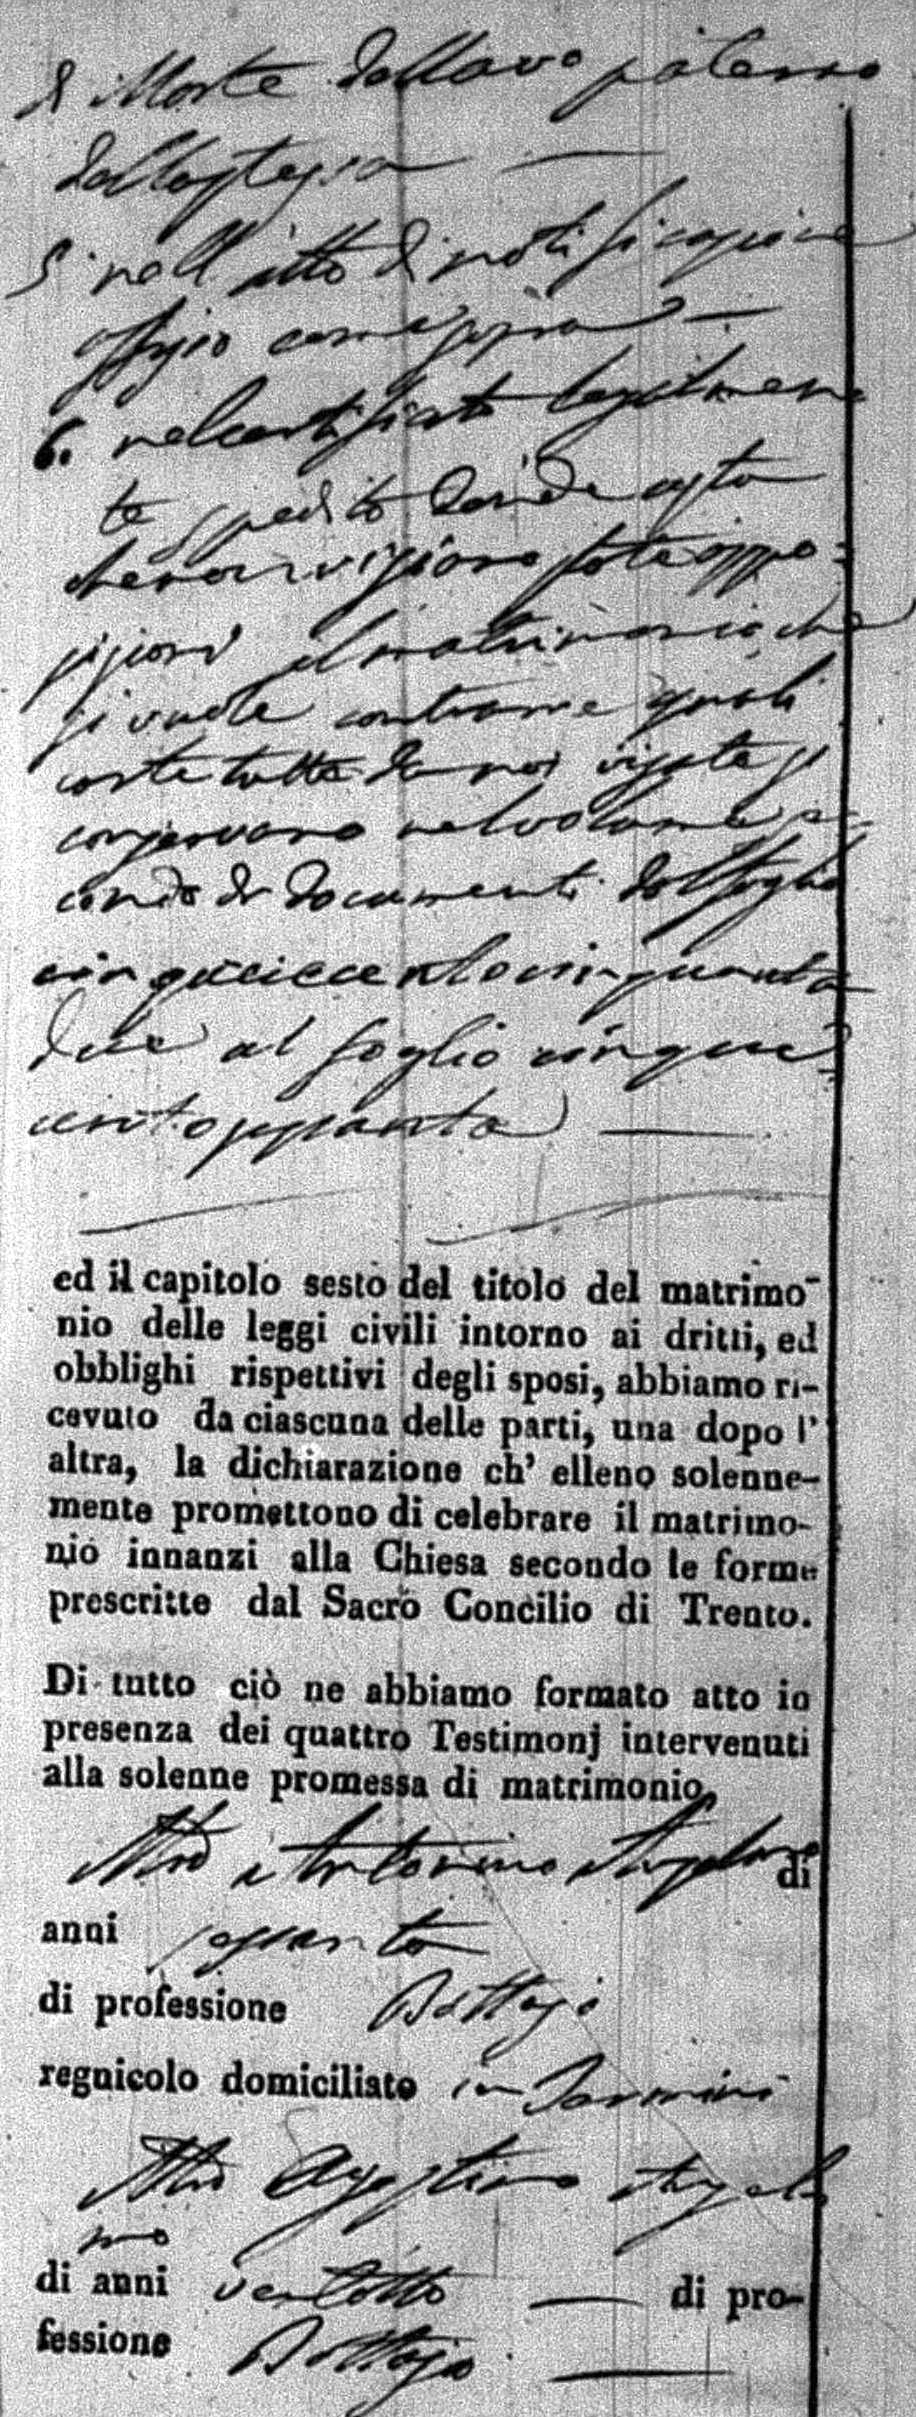 Bondi Onfrio Merlina Maria Marriage 1828 (C).jpg